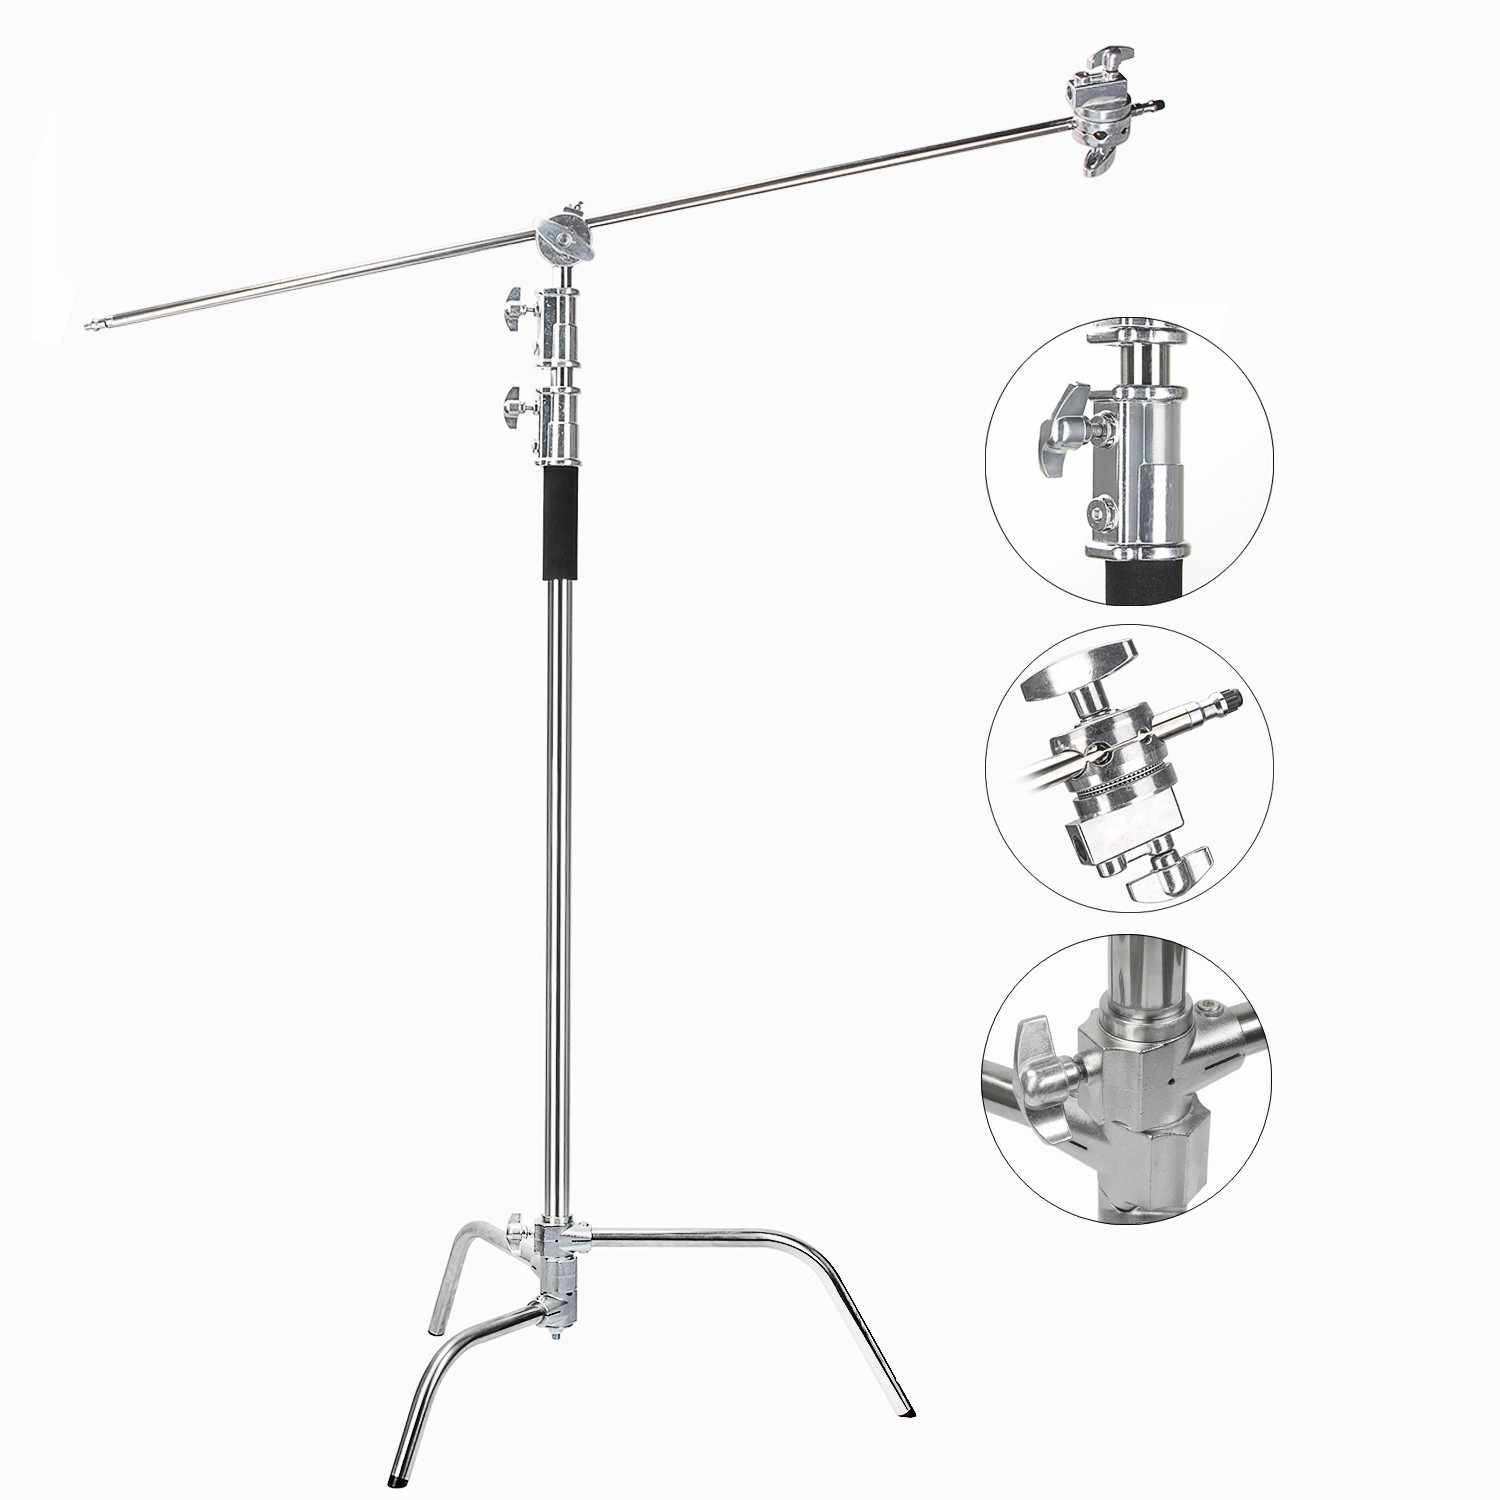 C Stand - Light Stand for Photography Equipment for Rent | RentSmart Asia | Renting Is The New Buying